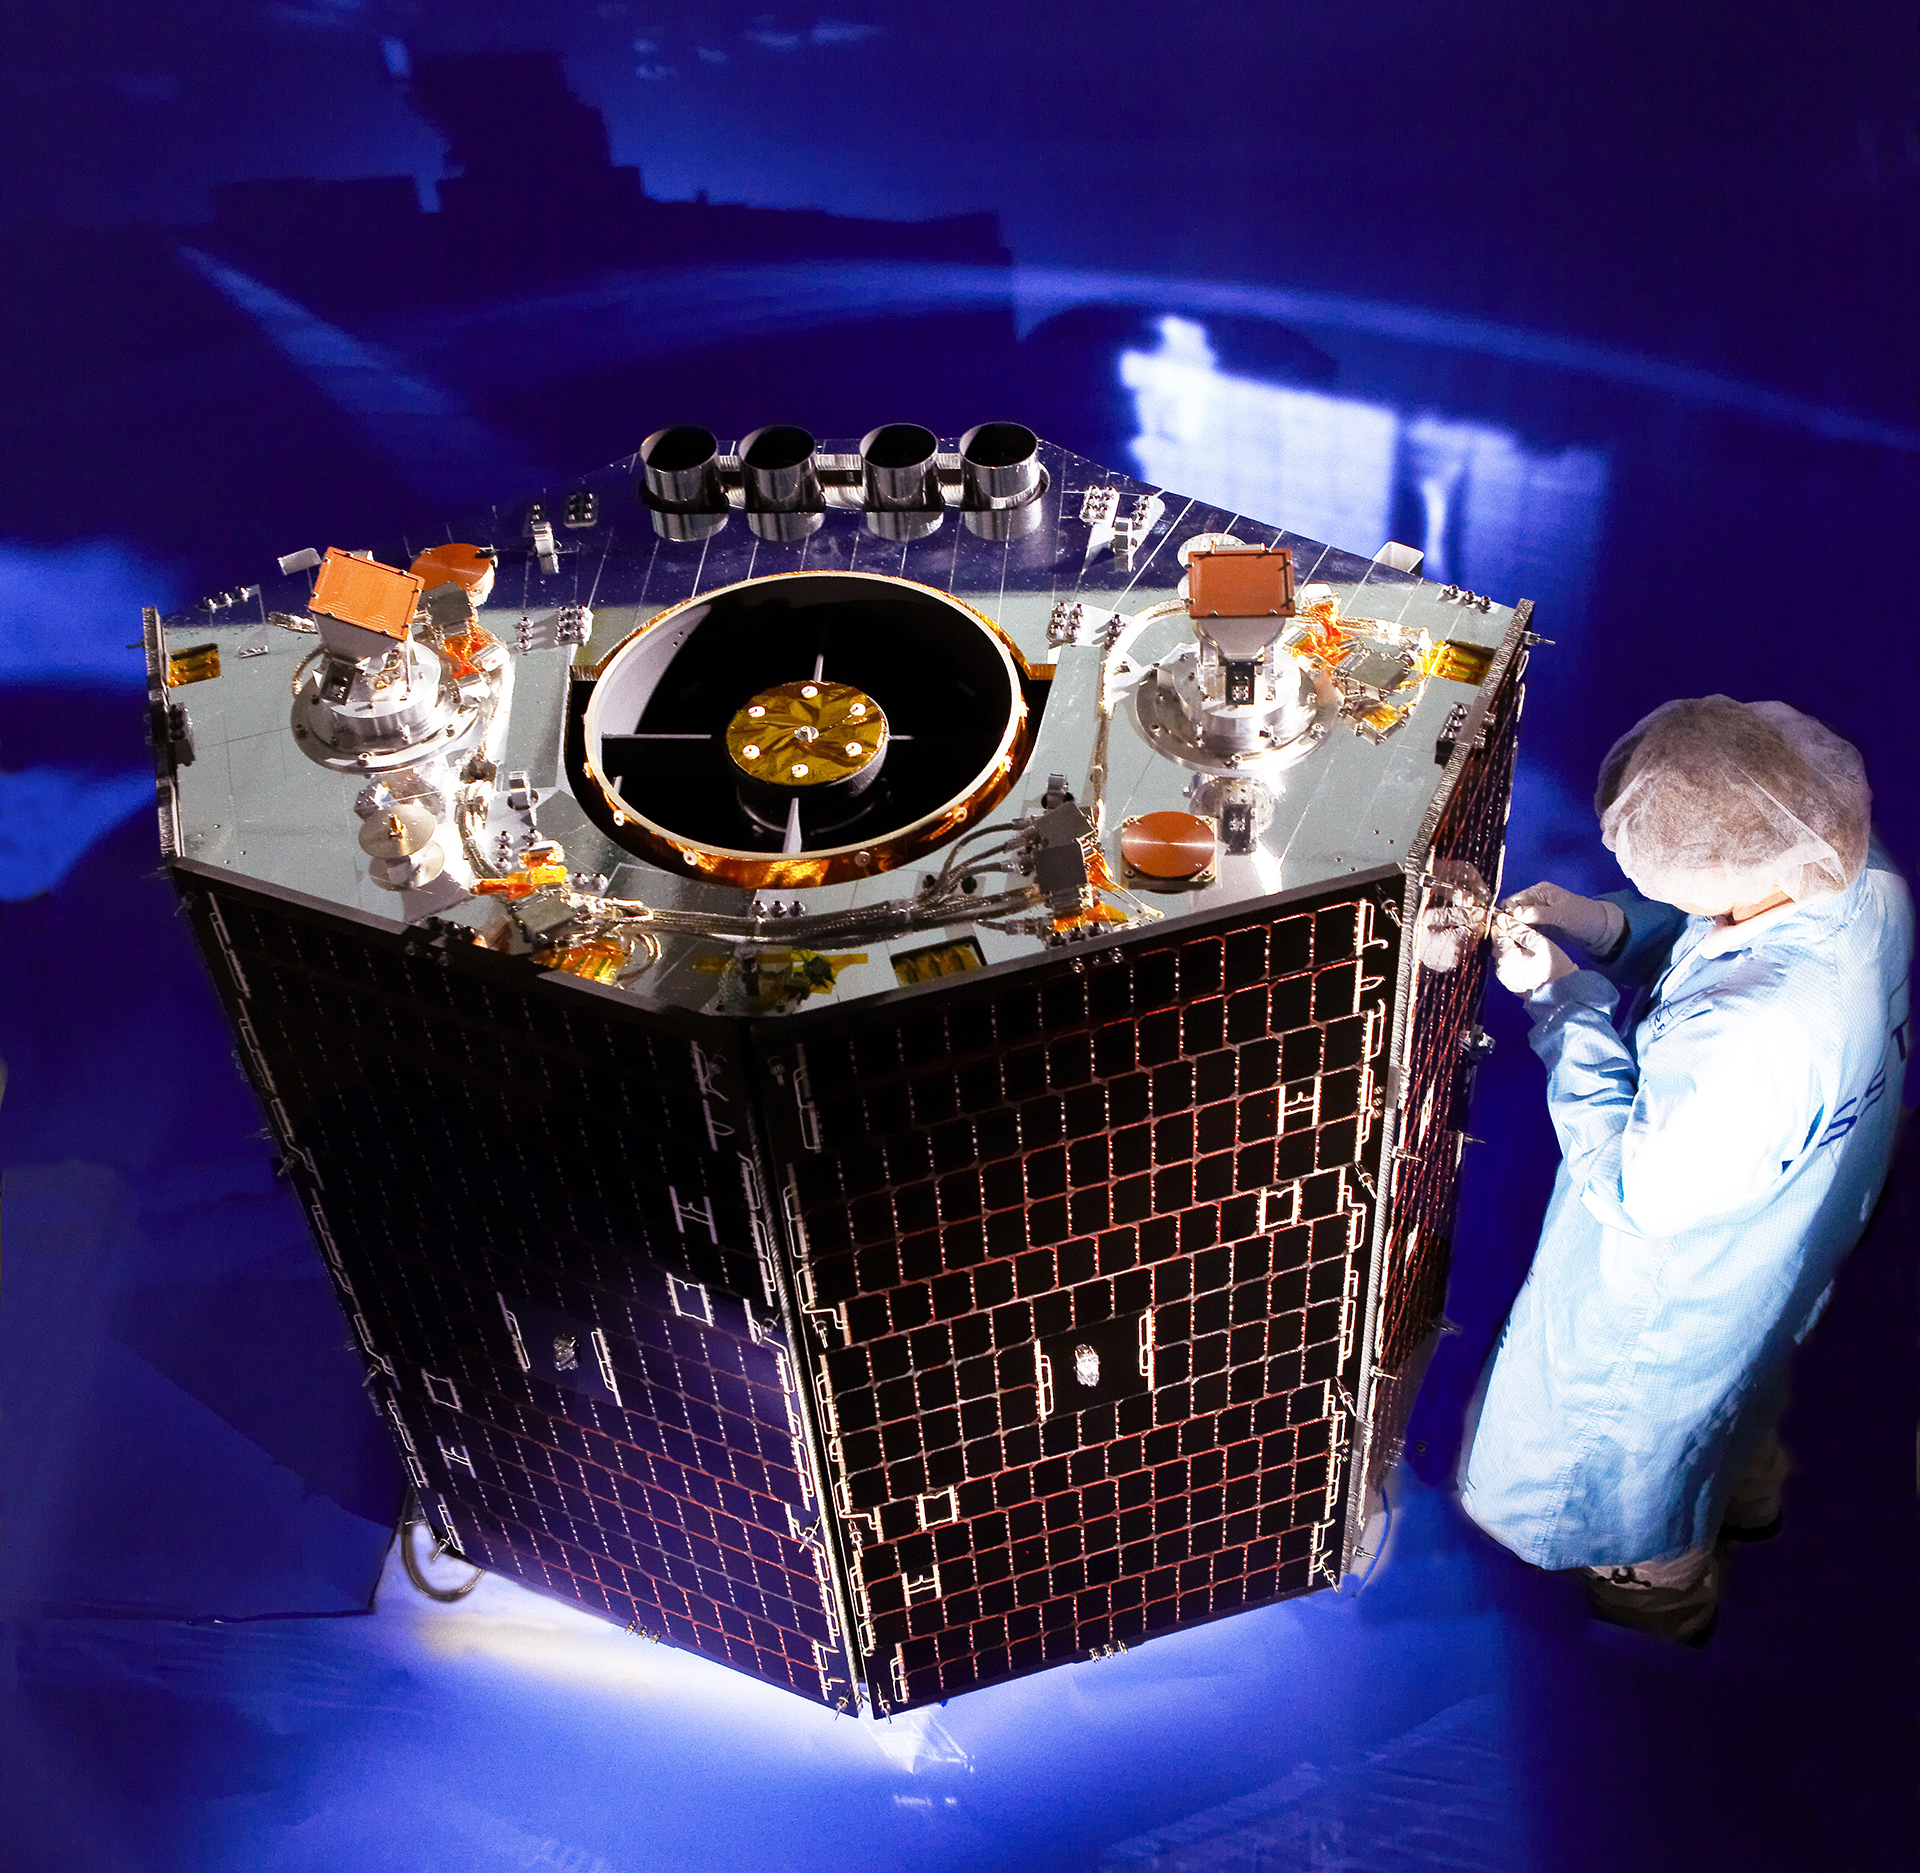 FIGURE 3. NigeriaSat-2 satellite, built by SSTL.